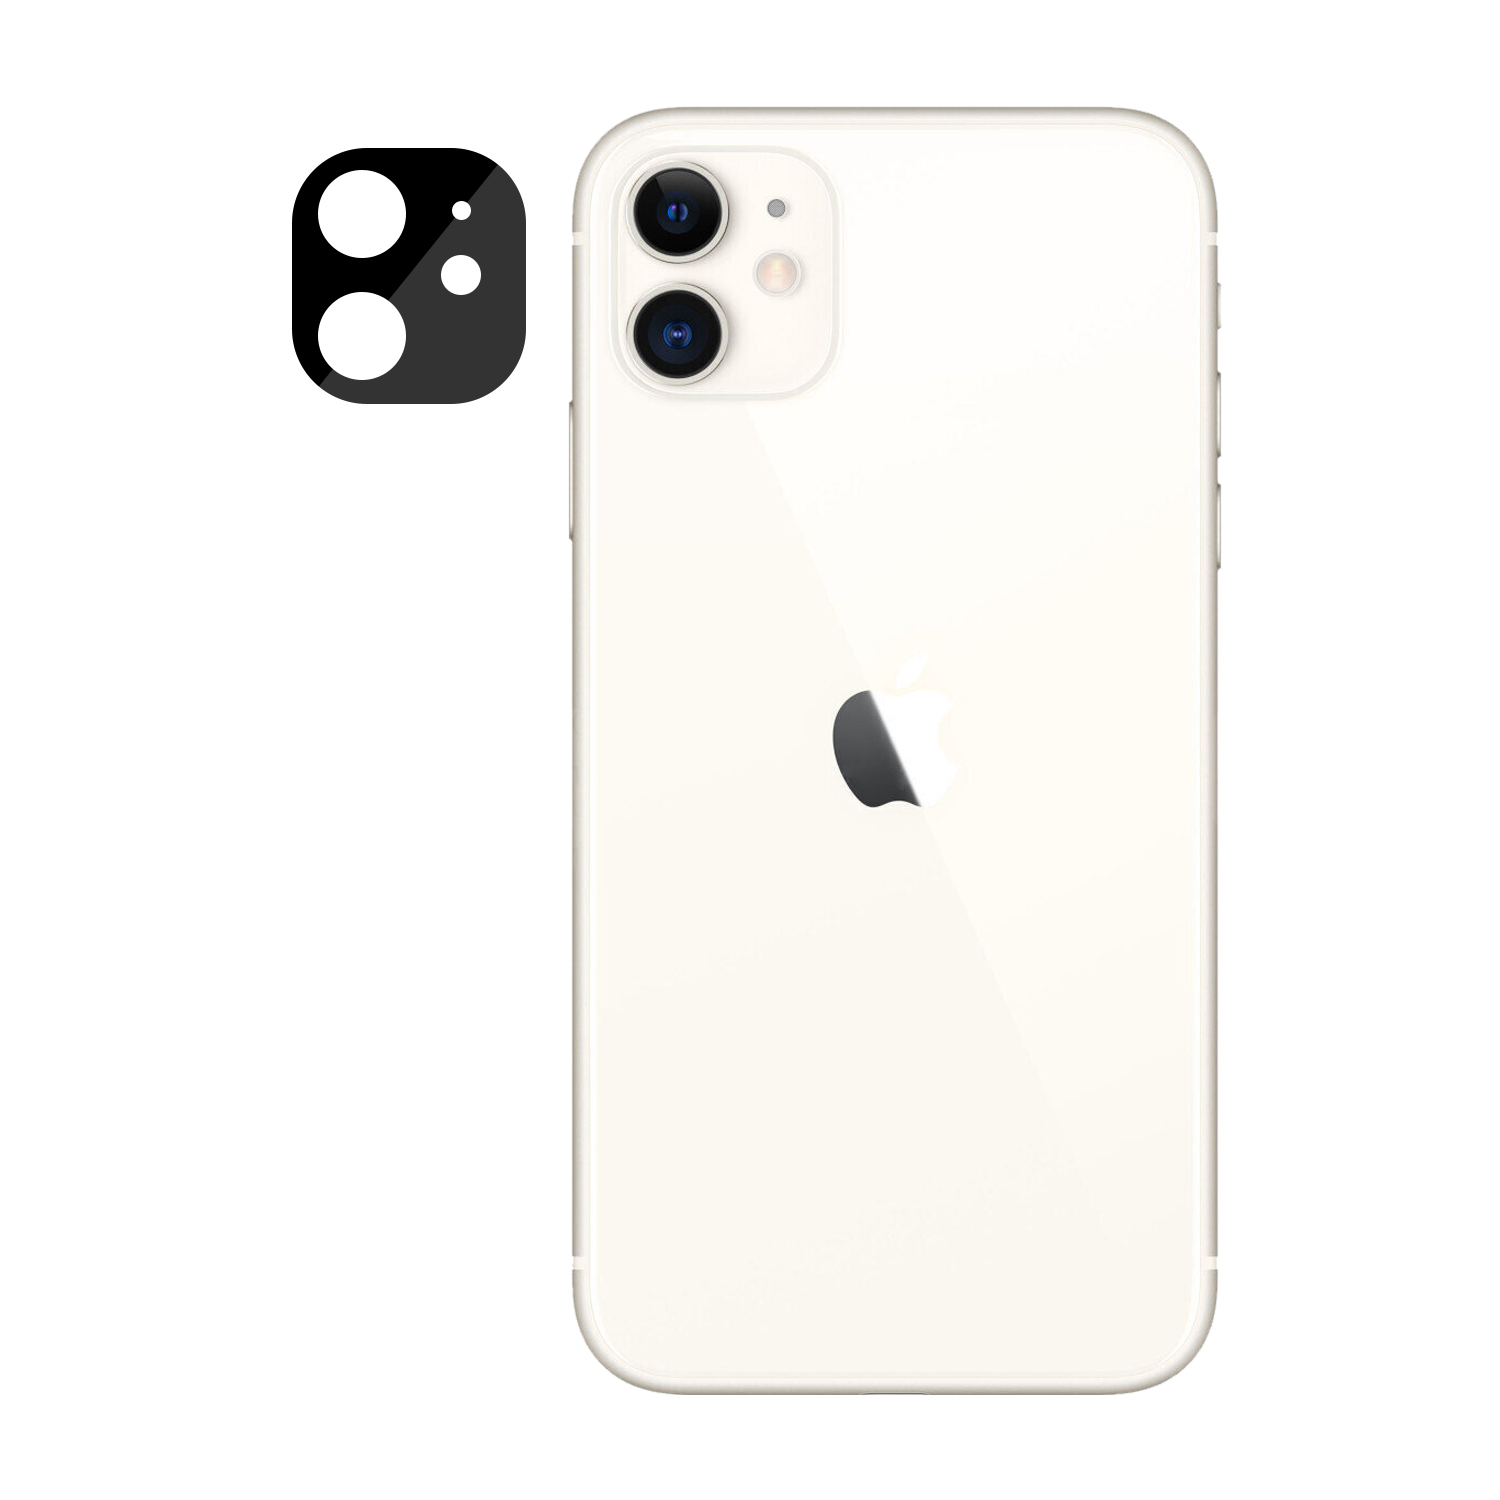 Iphone 11 New Fully Protective Lens Tempered Glass Black